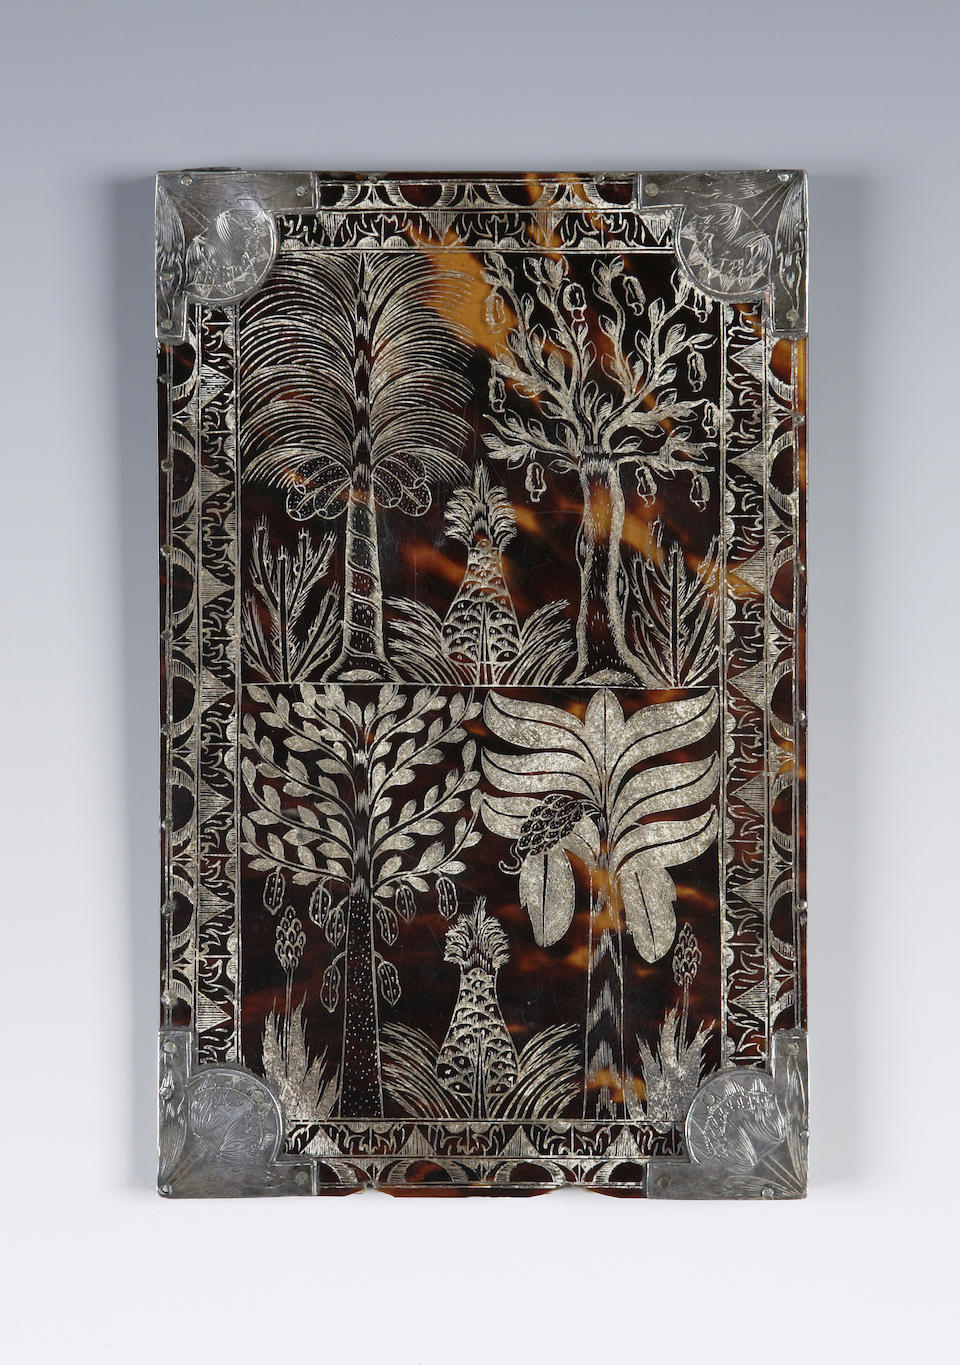 An engraved tortoiseshell and silver mounted comb case, dated 1688